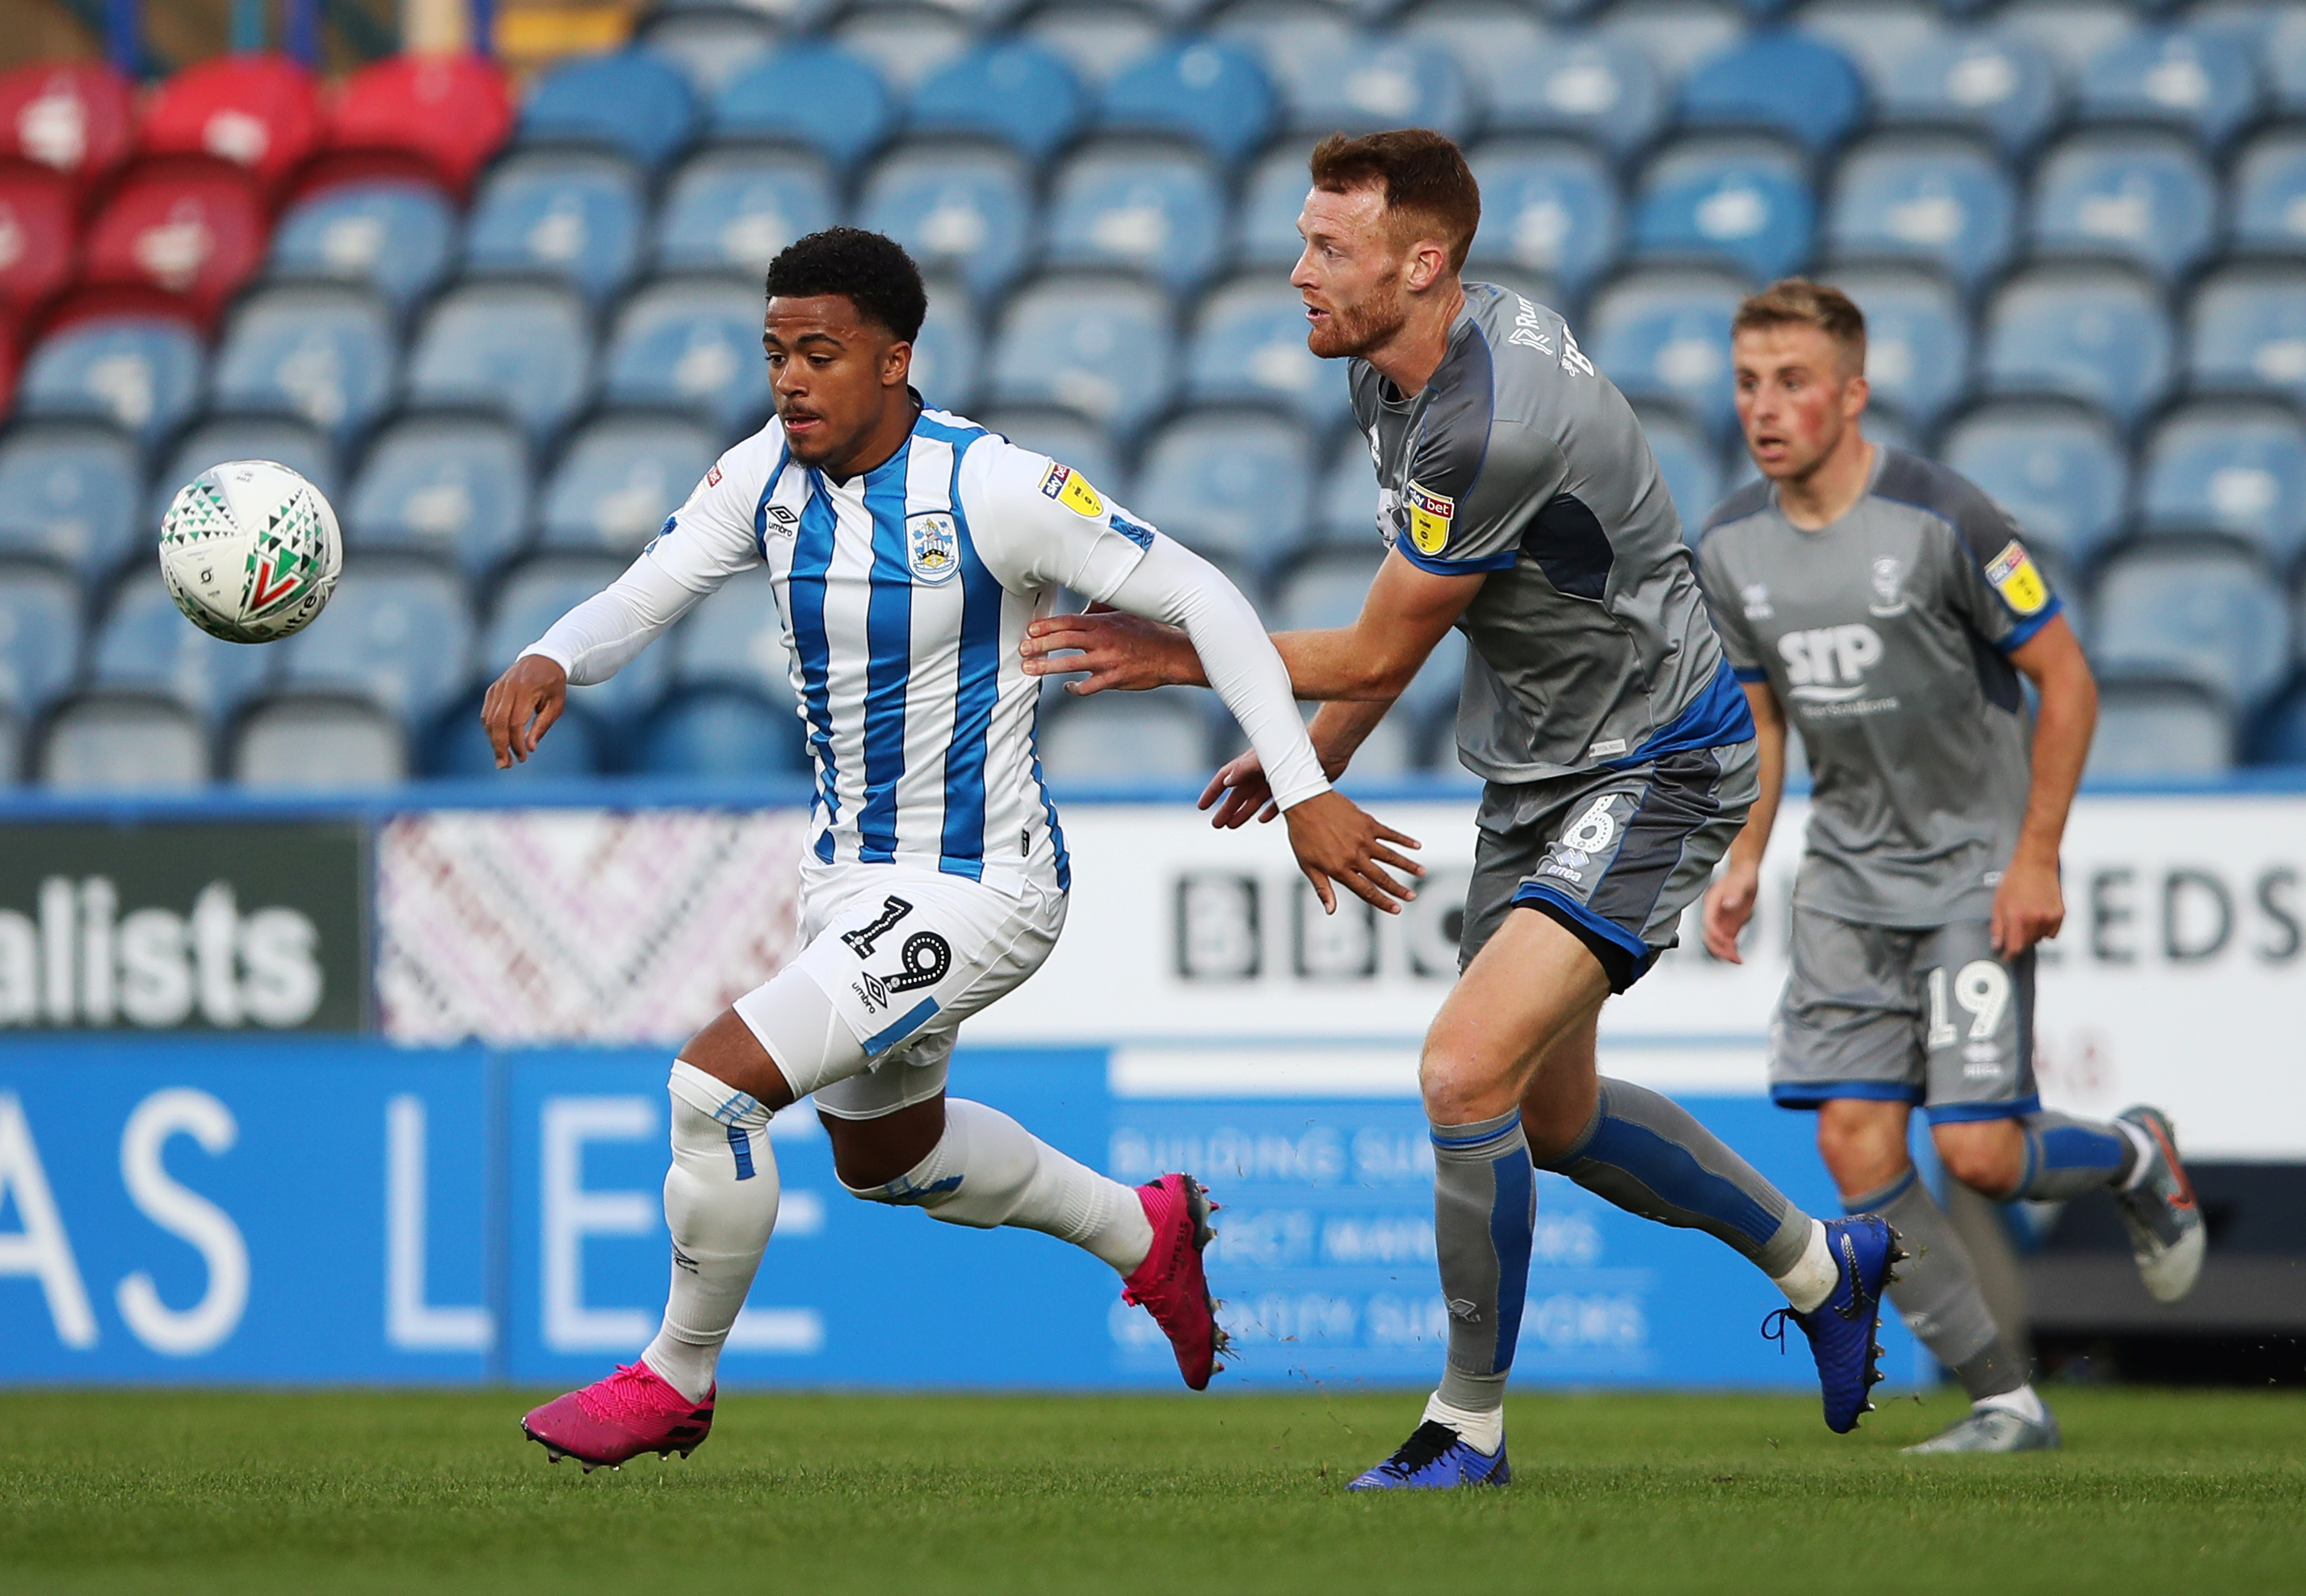 Carabao Cup First Round – Huddersfield Town v Lincoln City